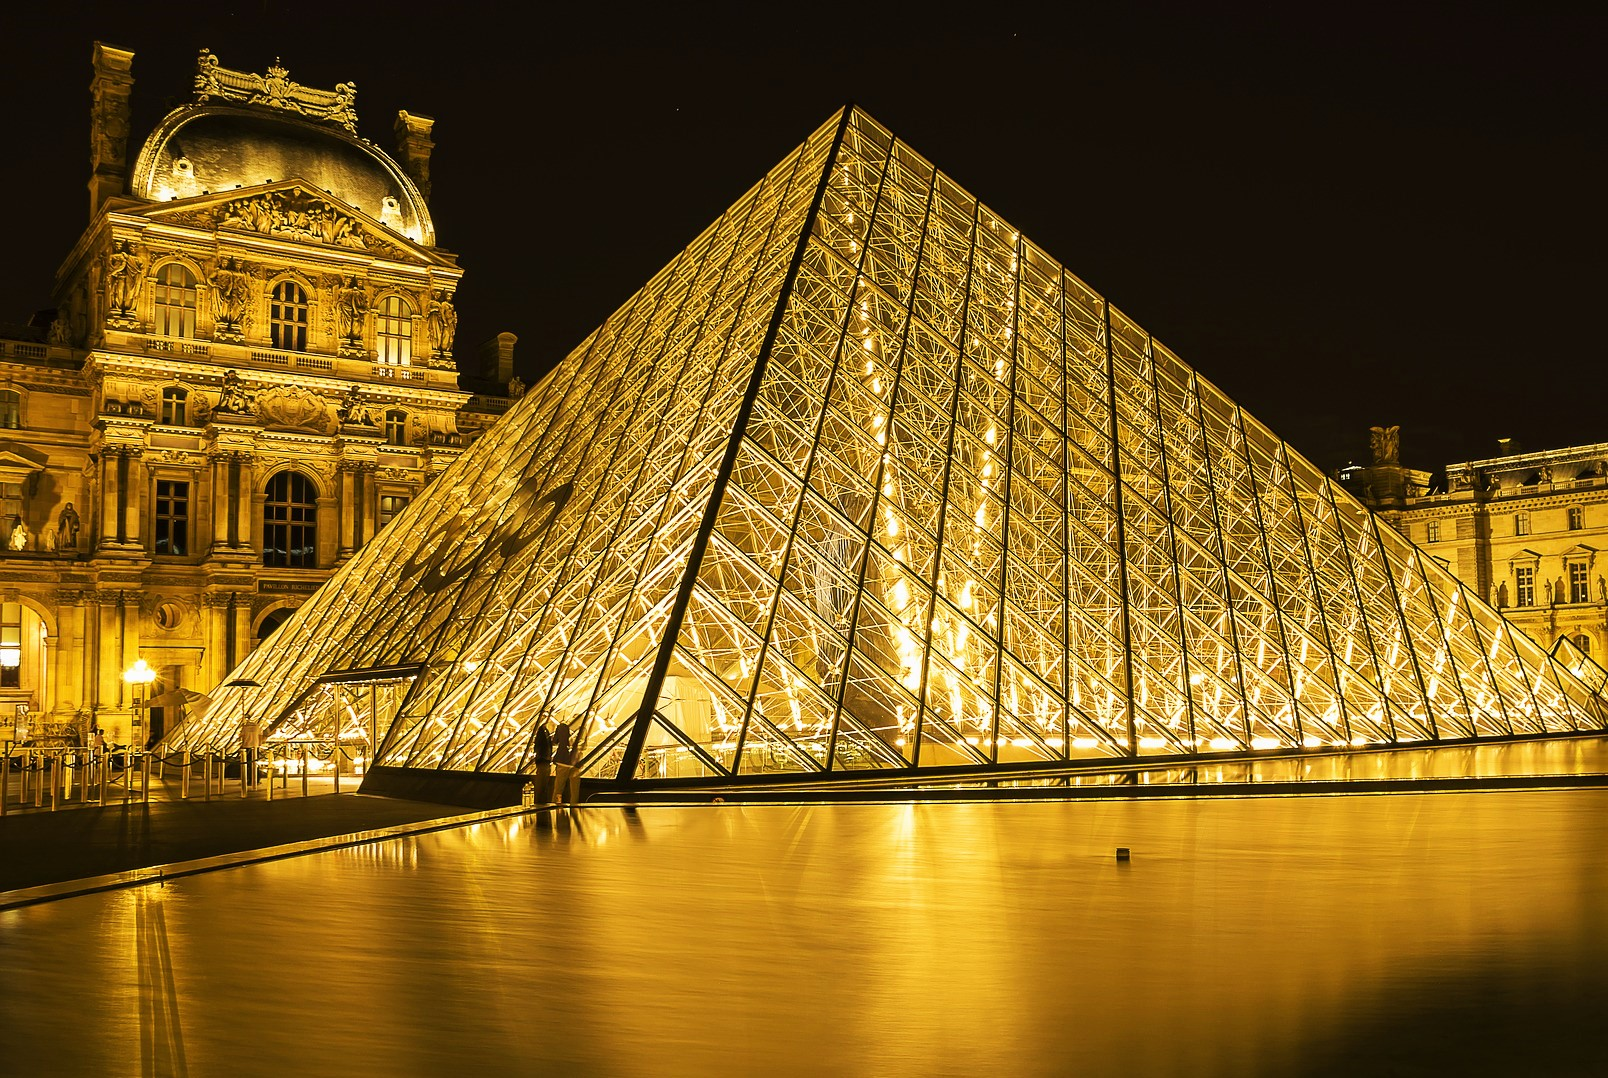 The Louvre Museum in Paris France - detailed guide